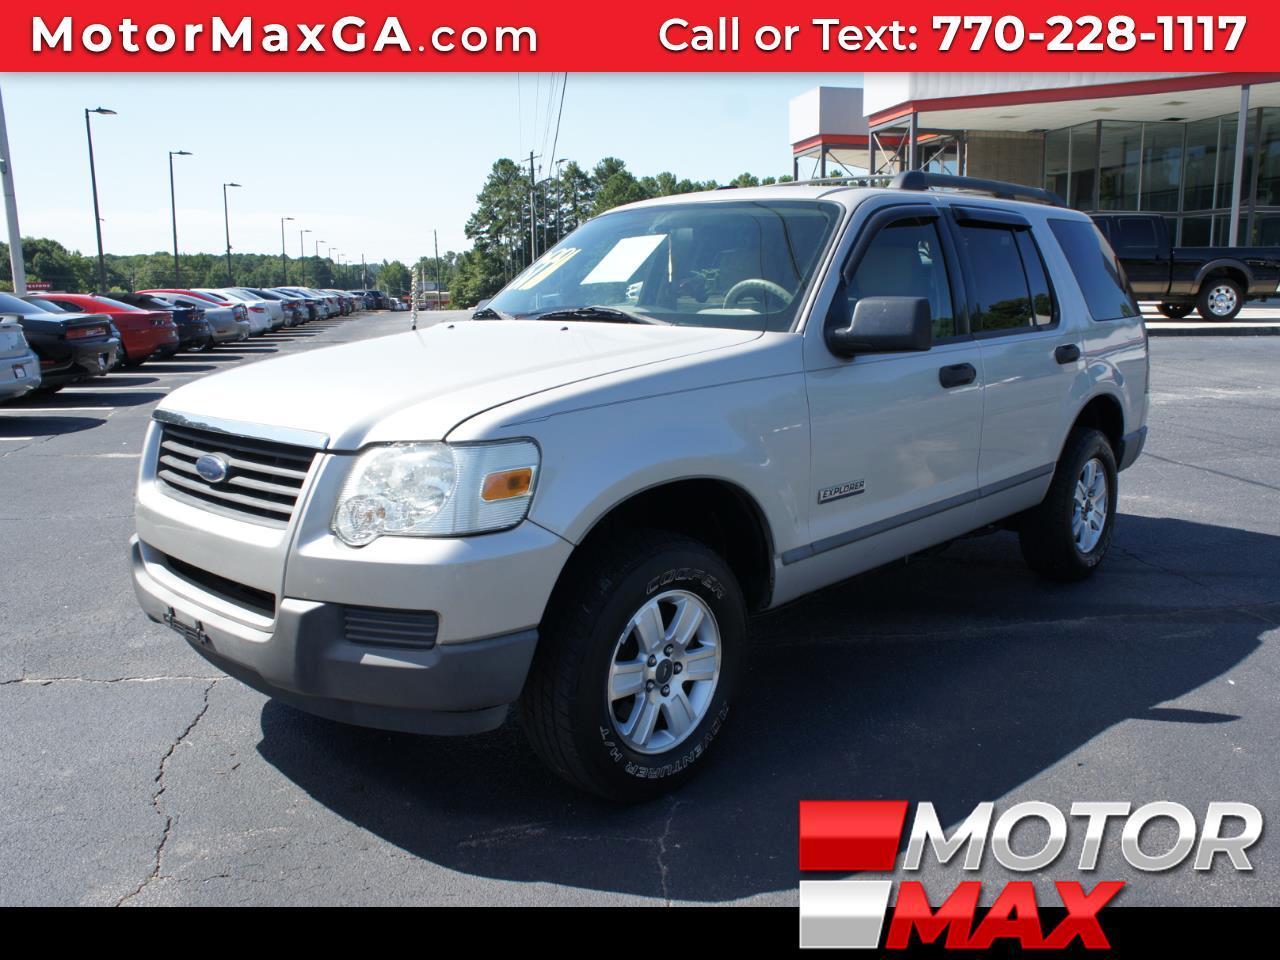 2006 Ford Explorer XLS 2WD